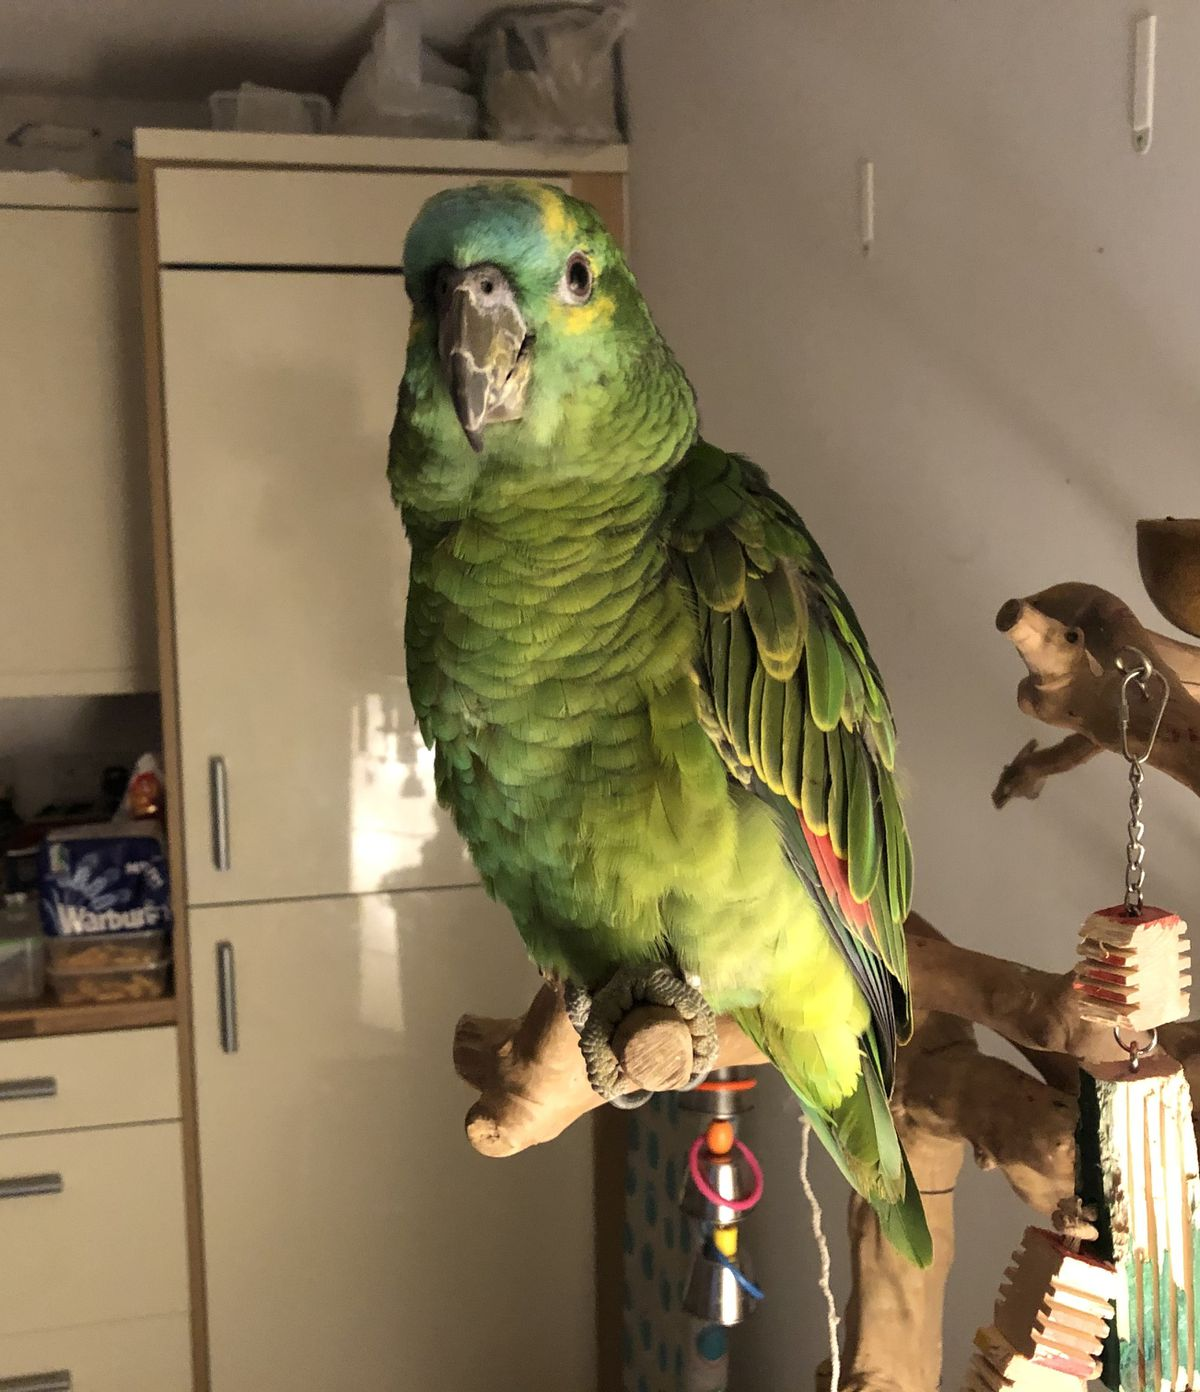 Lola the parrot